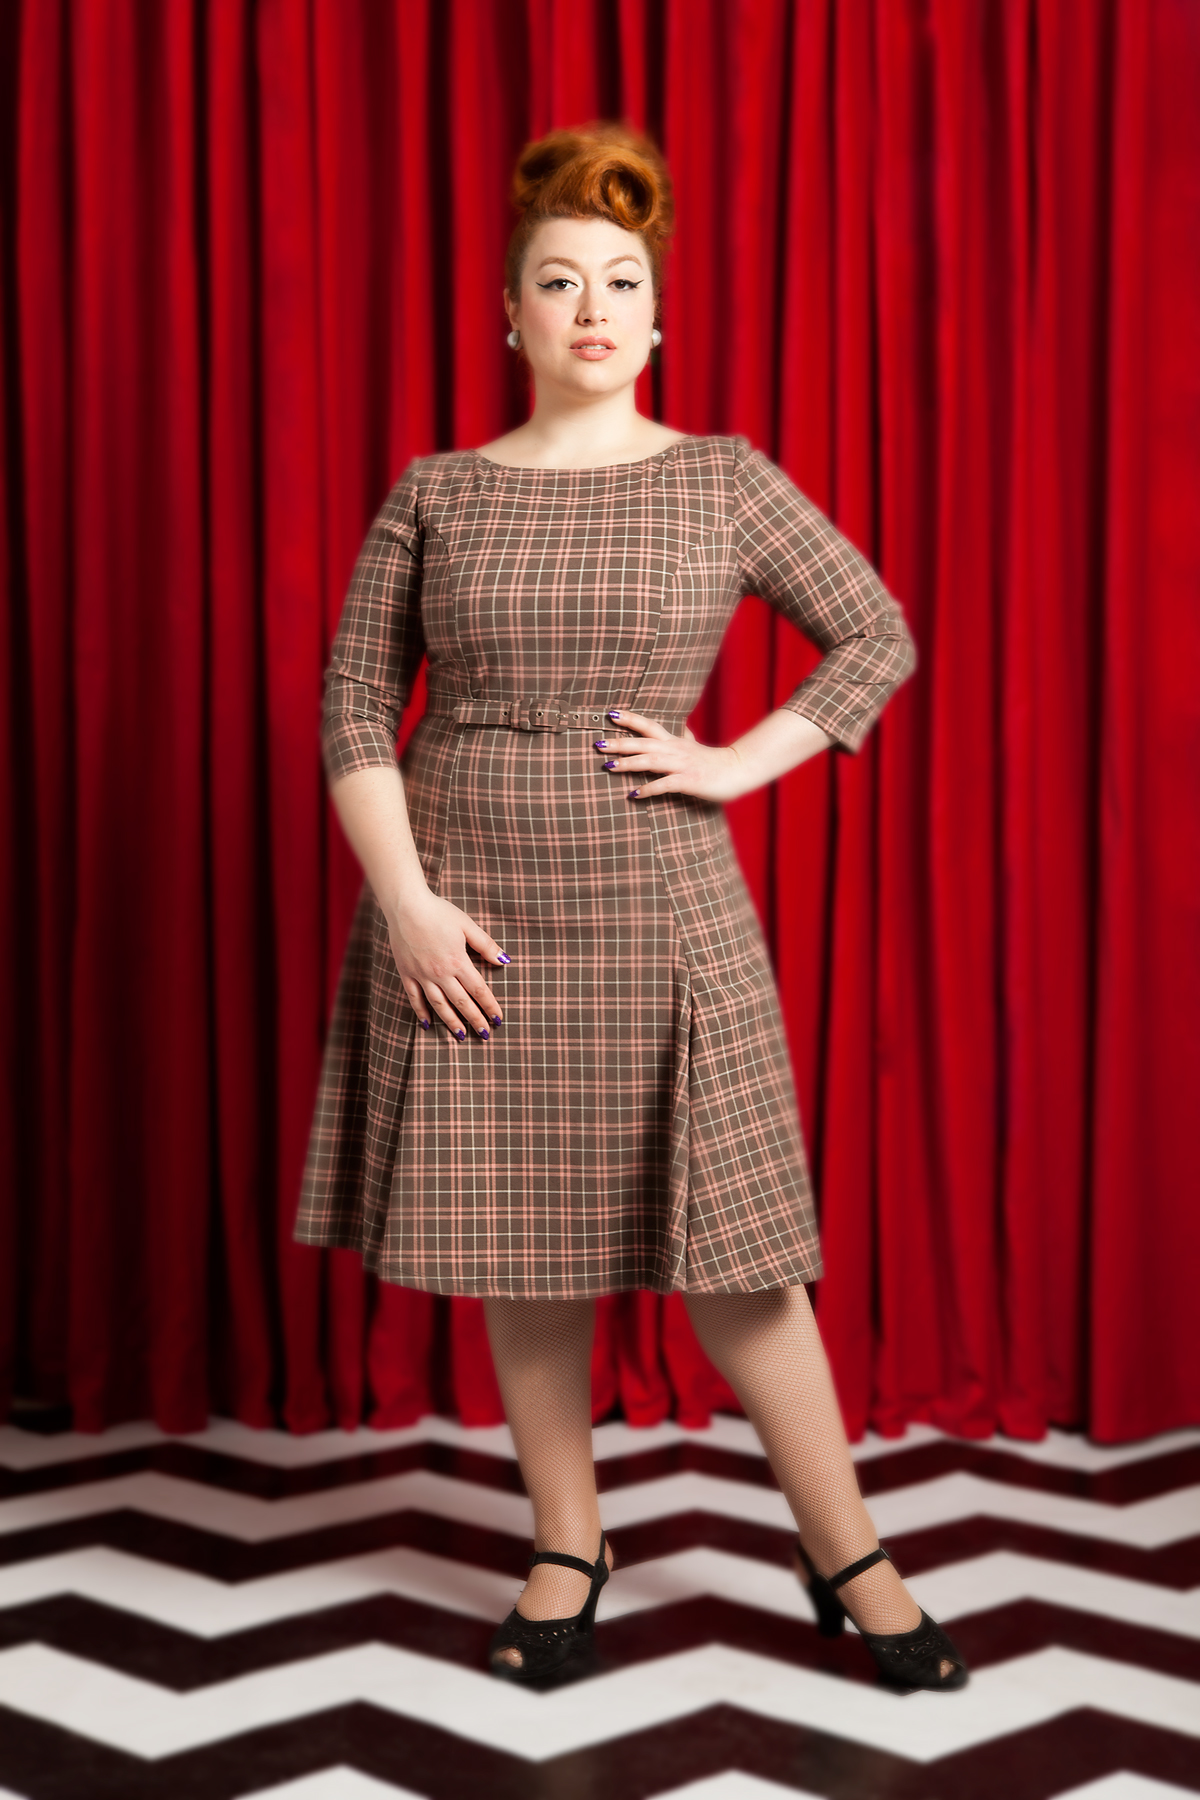 - Twin Peaks is back and so is Twin Peaks Chic! If you watched The Return and tried to explain it to your co-workers who haven't seen it, it would sound like you've been snacking on some of the local mushrooms. But they wouldn't mind if you looked as stunning & demure as Varla Velour here in Laura Byrnes California Sabrina Dress in Mushroom Pink Plaid from Pinup Girl Clothing! Varla is the Voluptuous Vixen of Burlesque and when she is not gallivanting on the red carpet in Hollywood she is just your ordinary average small town, burlesque-dancing, Canadian Jewtina!